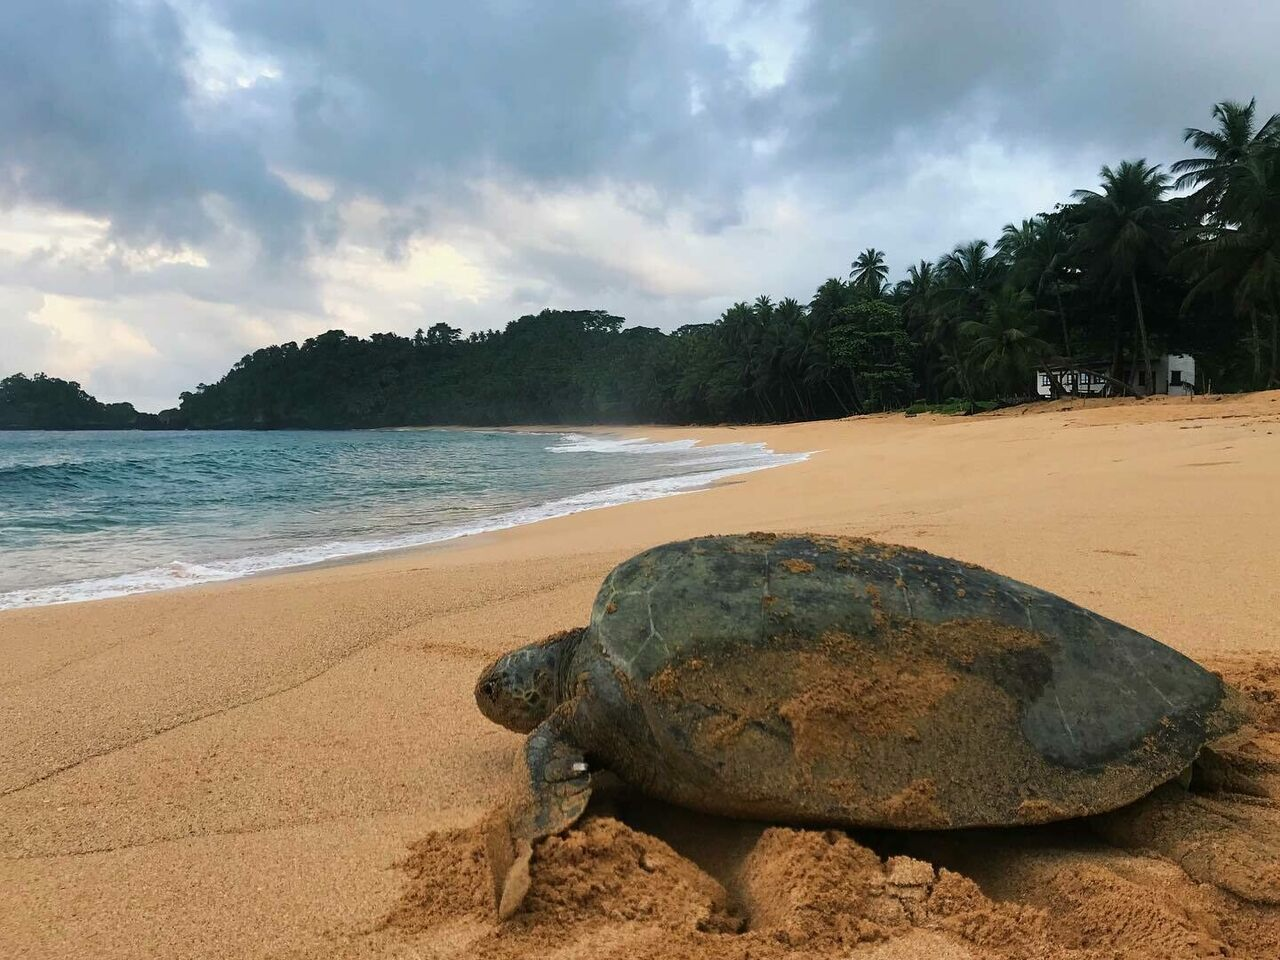 The endangered sea turtles of São Tomé now have the island's biggest pop star on their side.